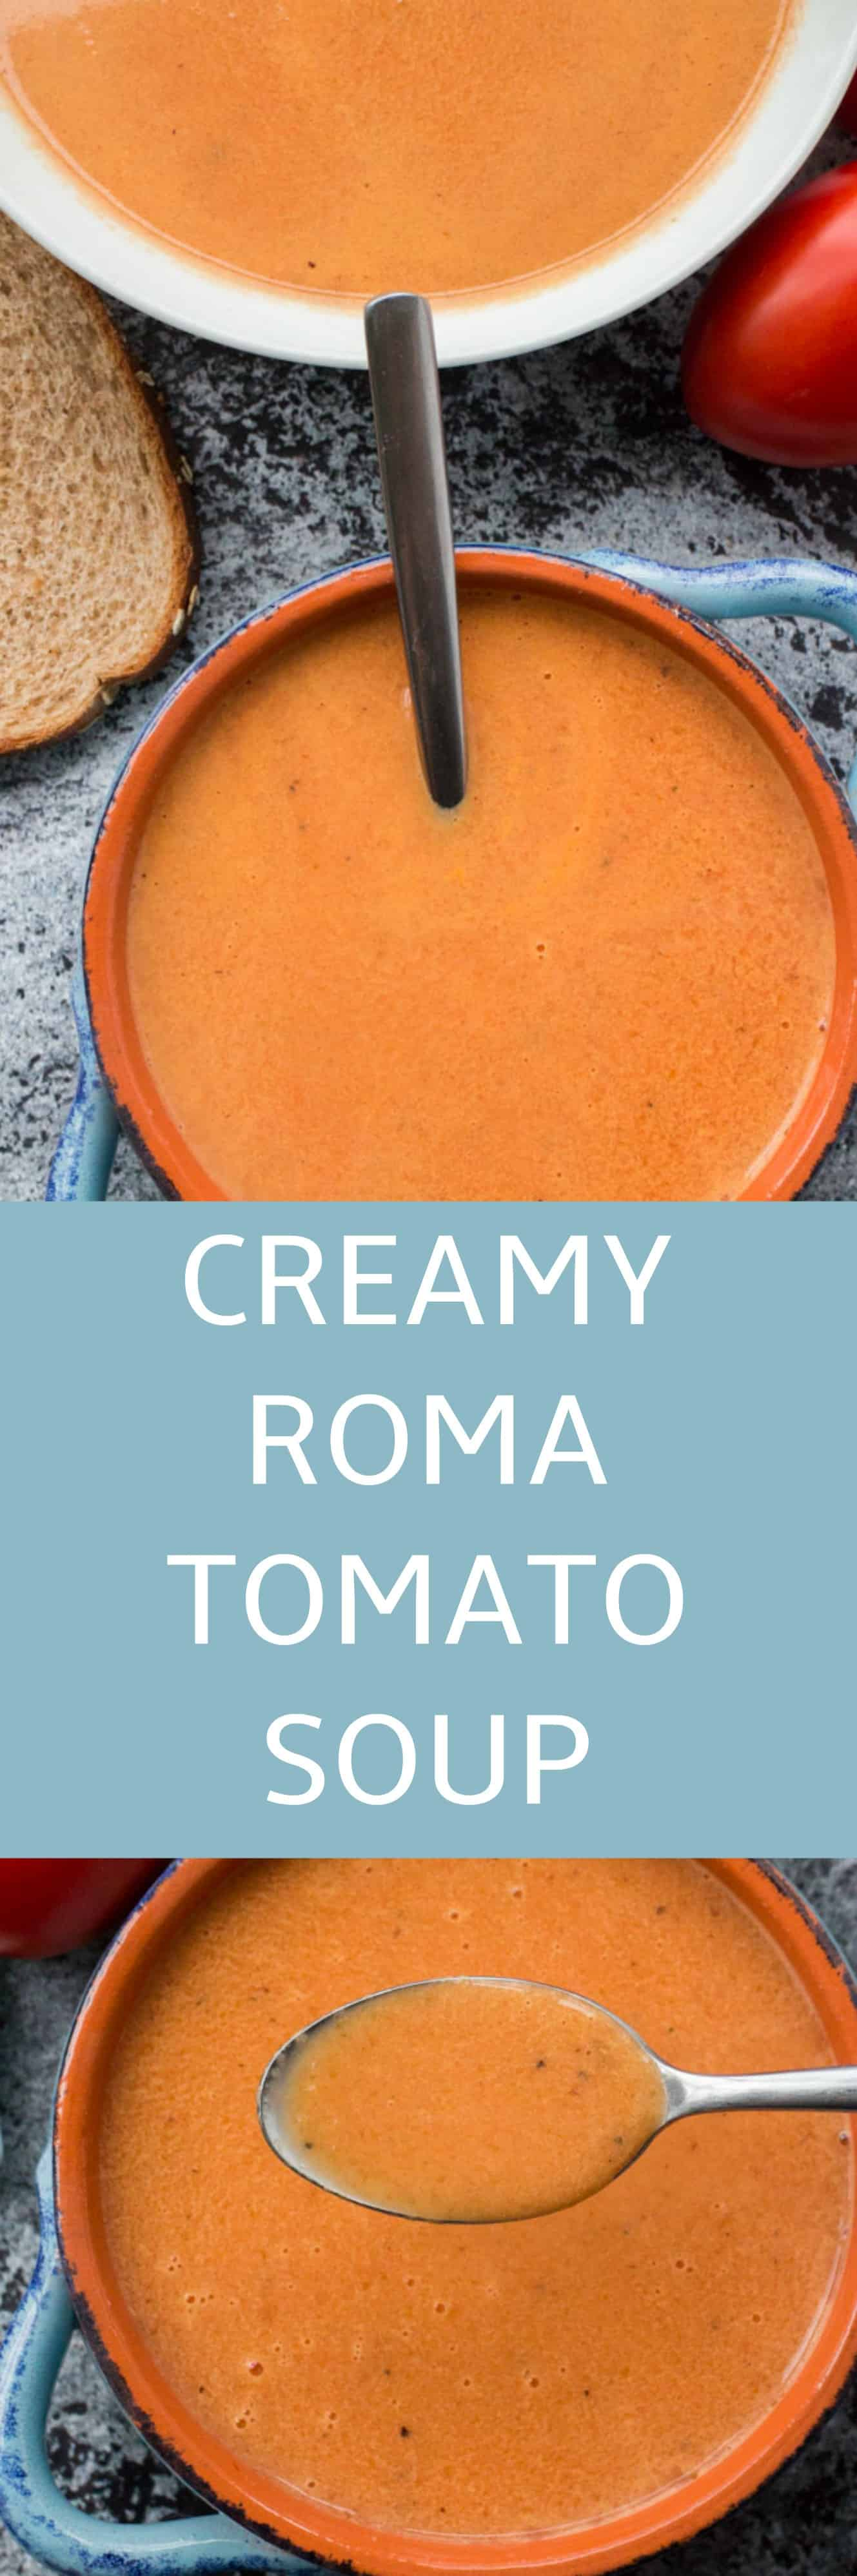 CREAMY TOMATO SOUP using fresh roma plum tomatoes!   This easy homemade recipe is perfect for when you are picking fresh tomatoes from the garden!  You will never buy canned tomato soup again!  This is kids favorite tomato soup!